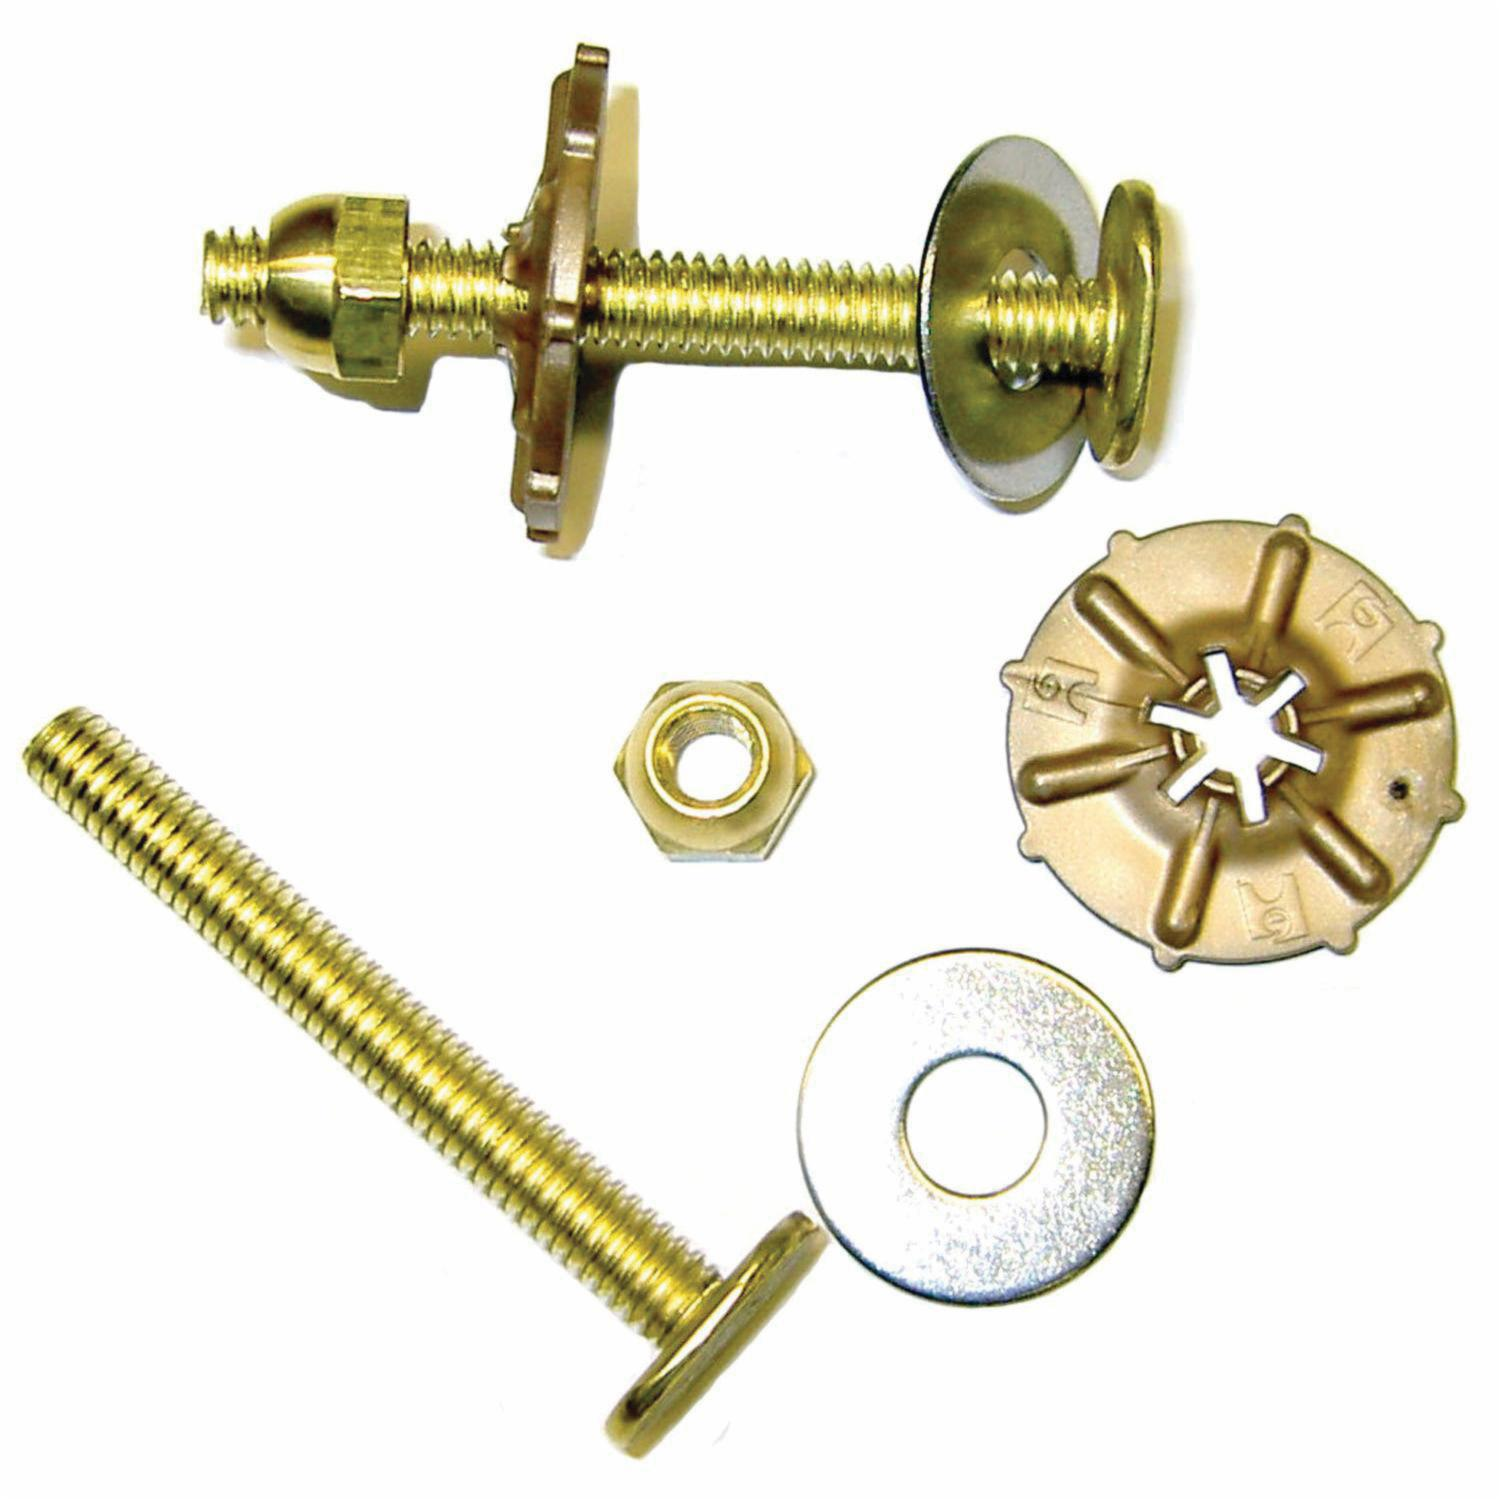 Oatey P9100B Dearborn Brass Disposer Kit for In-Sink-Erator Bagged Small